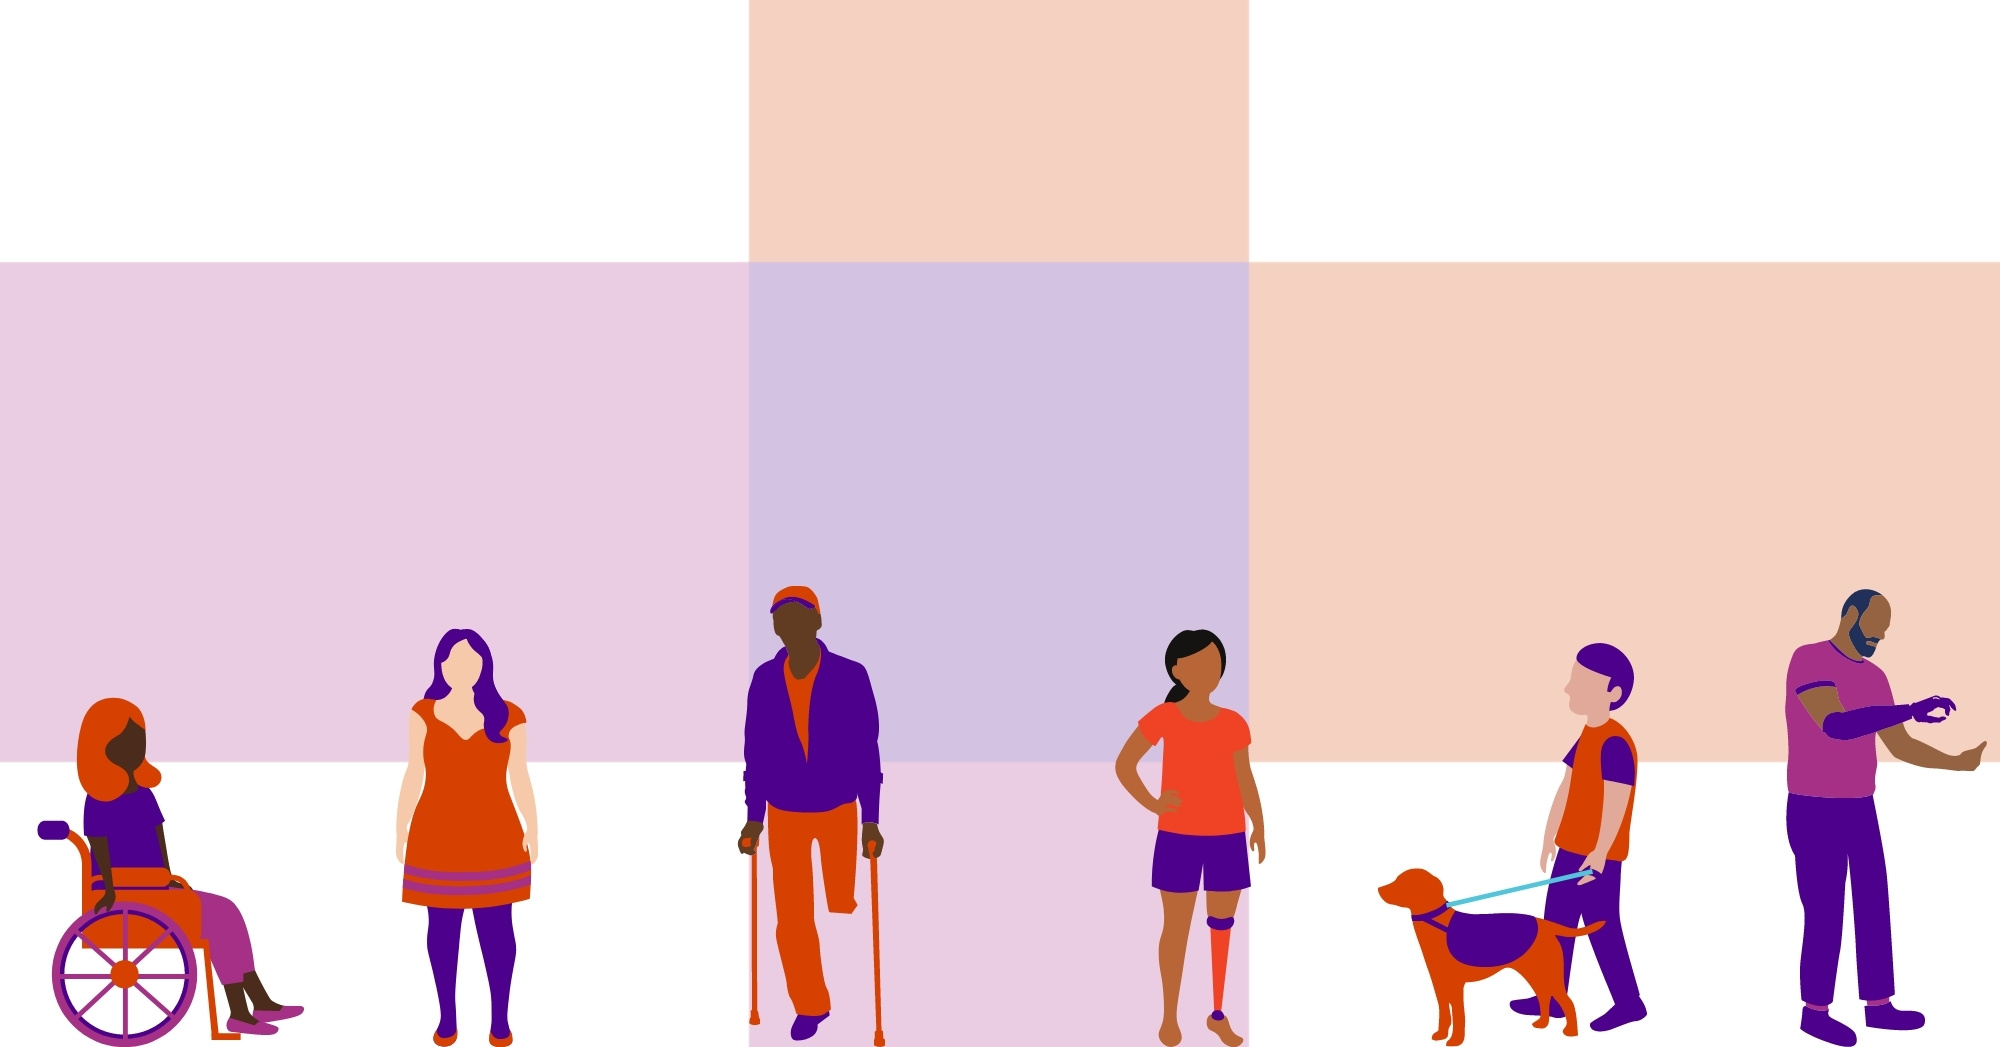 Six illustrations of people in various skin tones, all wearing variations of pink, orange, and purple. There's person in a wheelchair, a person in a dress, a person using two canes with an amputated leg, a person with a prosthetic leg, a person walking a guide dog, a person with a prosthetic arm.